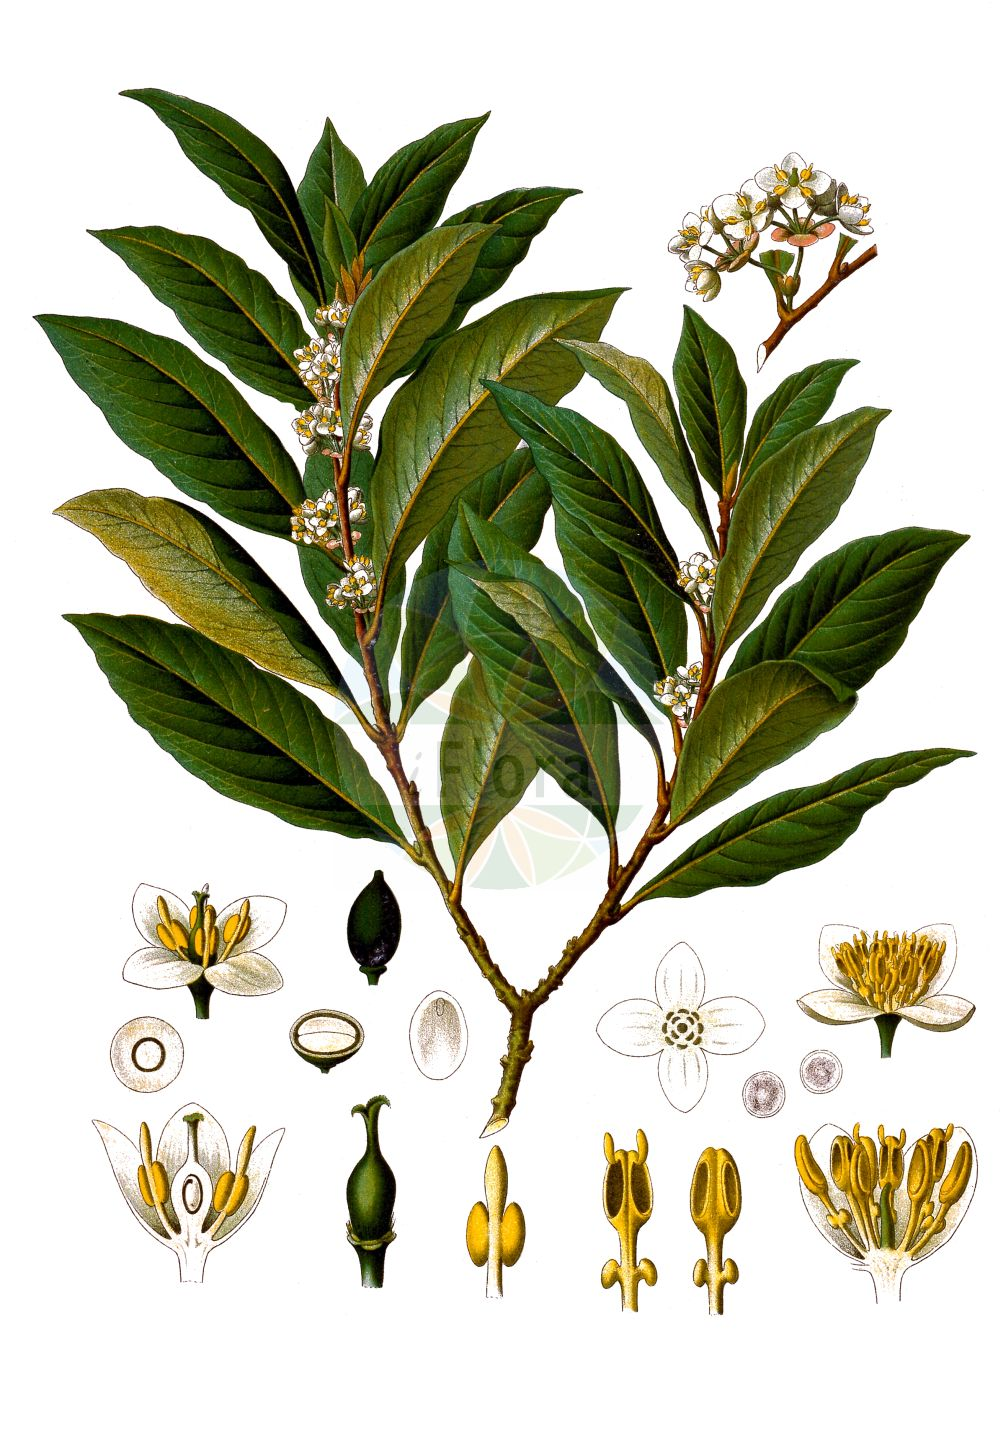 Historische Abbildung von Laurus nobilis. Das Bild zeigt Blatt, Bluete, Frucht und Same. ---- Historical Drawing of Laurus nobilis.The image is showing leaf, flower, fruit and seed.(Laurus nobilis,Laurus nobilis,Laurus,Lauraceae,Blatt,Bluete,Frucht,Same,leaf,flower,fruit,seed,Koehler (1883-1898))